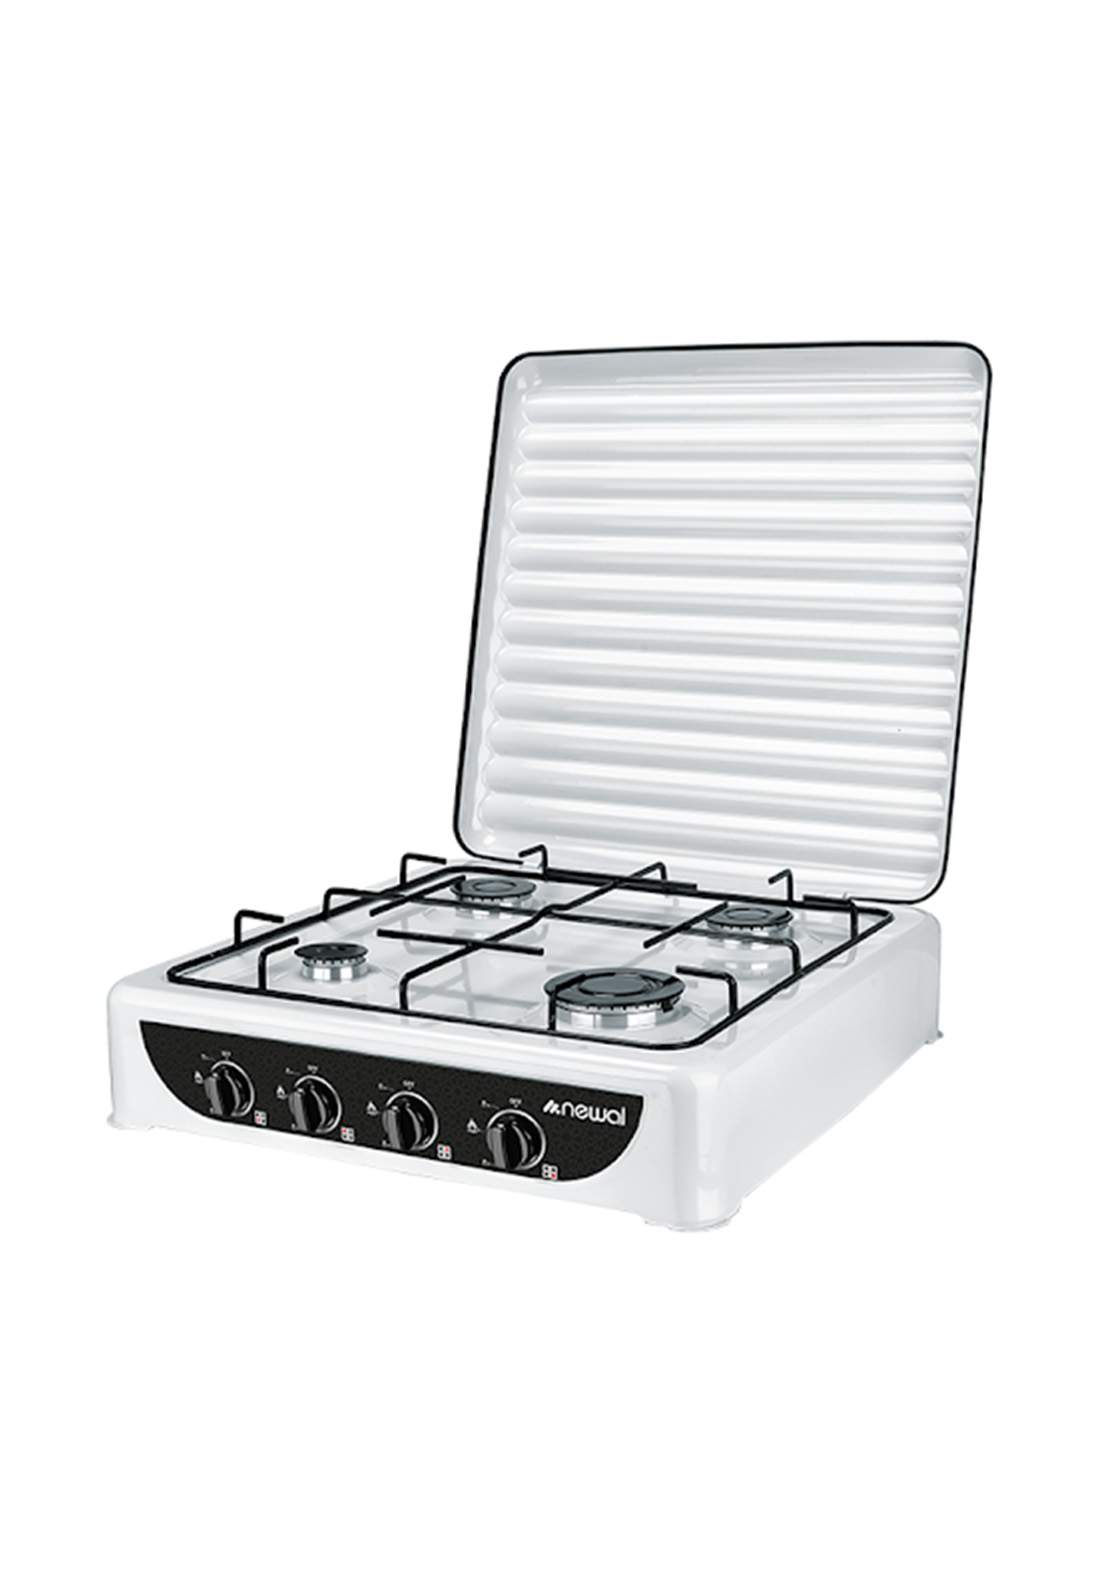 Newal Hob-226-01 Tabletop Cooker 4 Cooking Places  طباخ منضدي